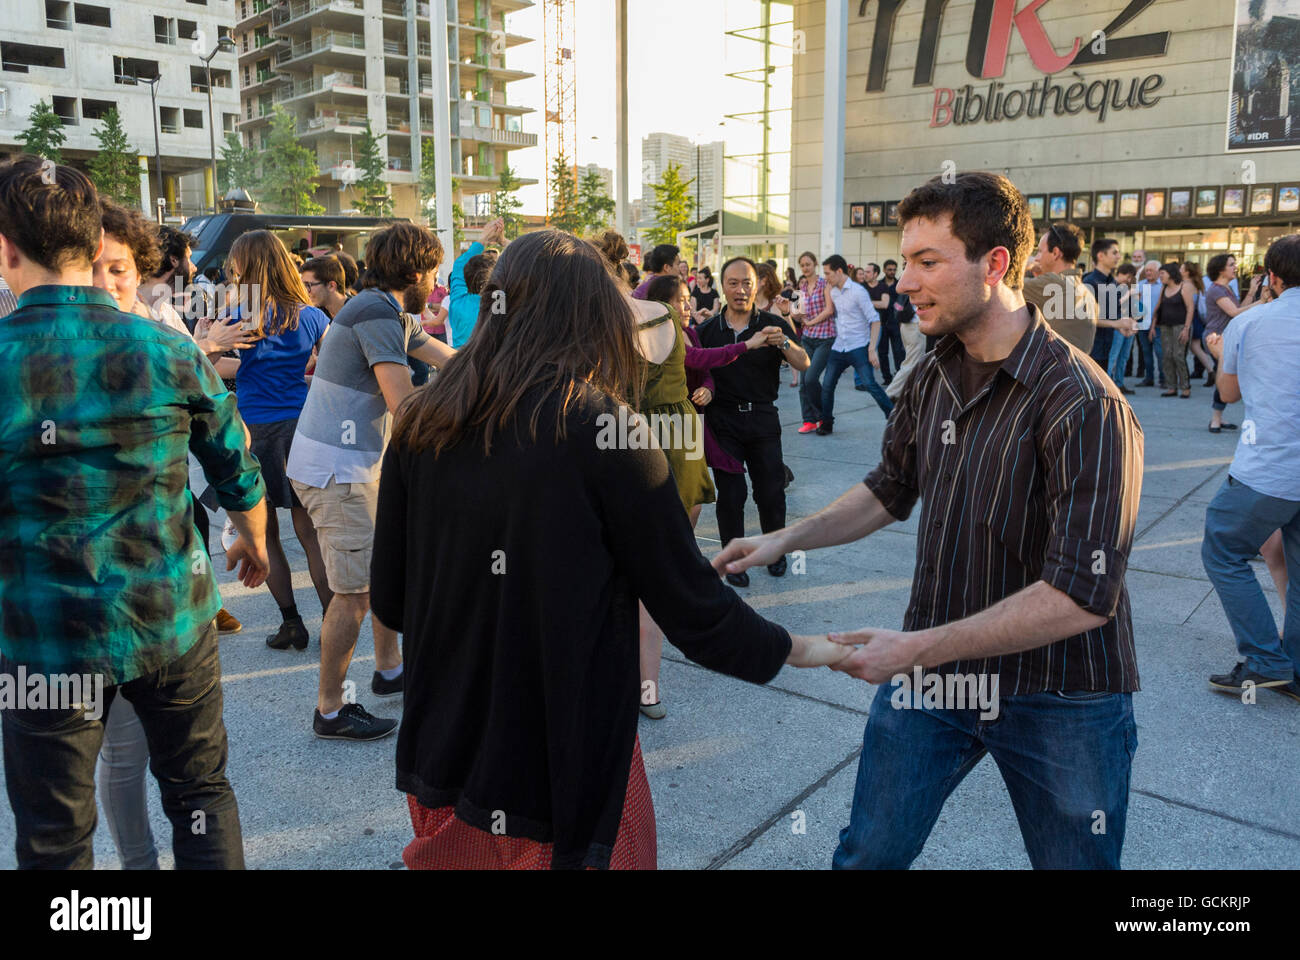 Paris, France, Crowd of French Couples, Swing Dancing on Street in Bibliotheque Neighborhood - Stock Image